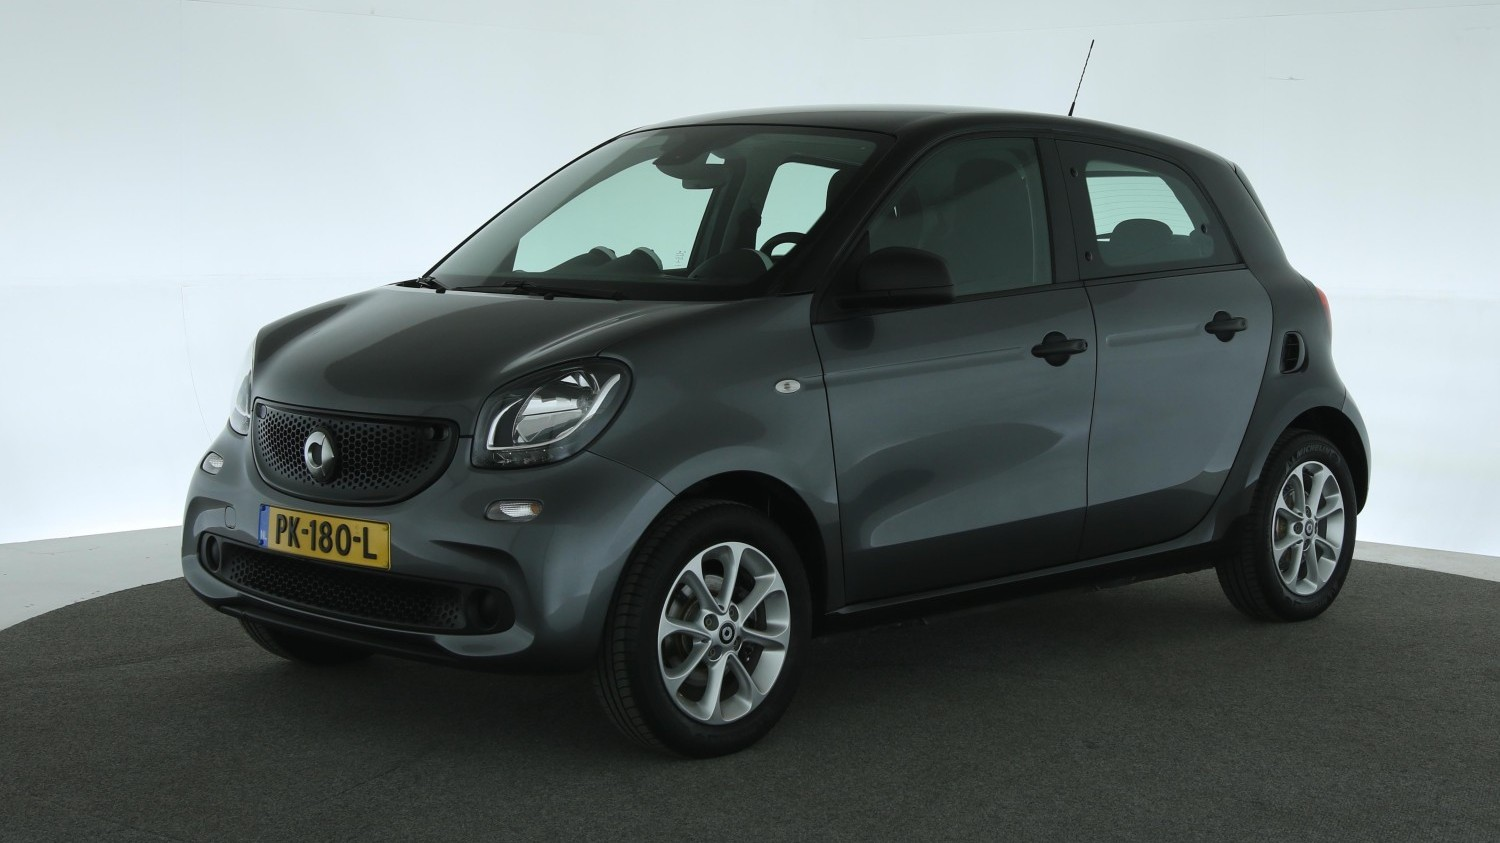 Smart Forfour Hatchback 2017 PK-180-L 1